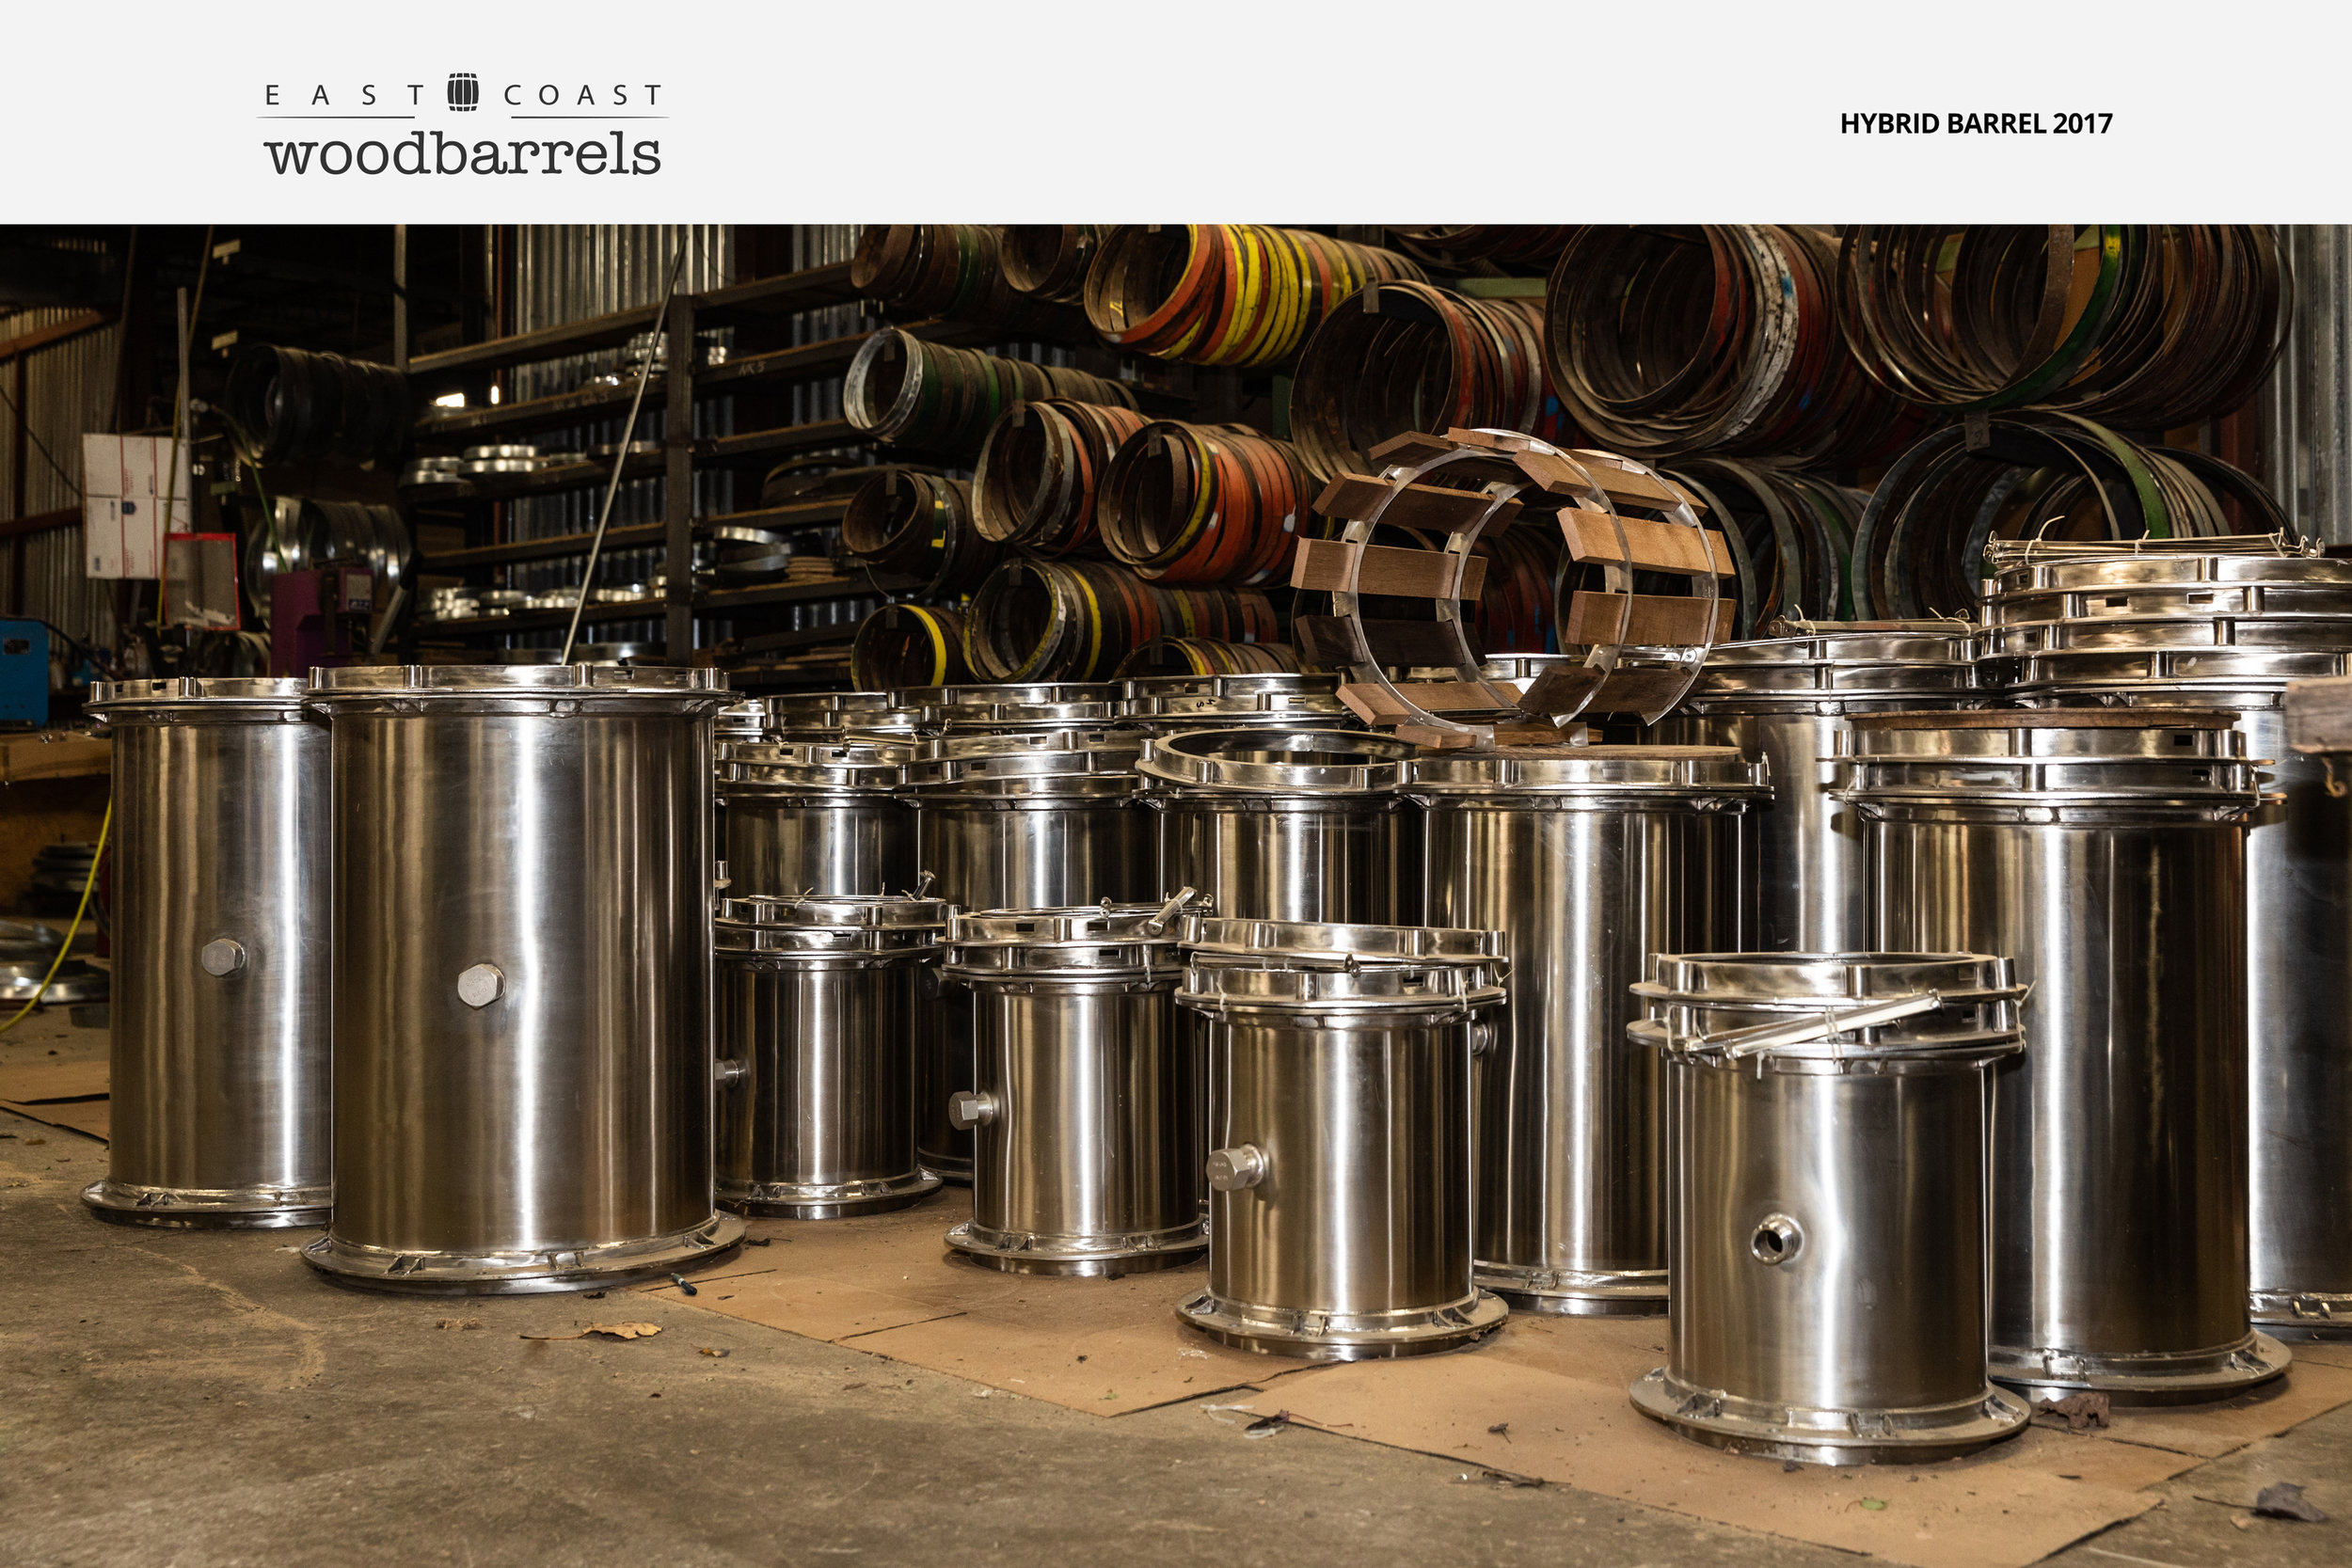 EAST-COAST-WOOD-BARRELS-WEB-IMAGES-7.jpg